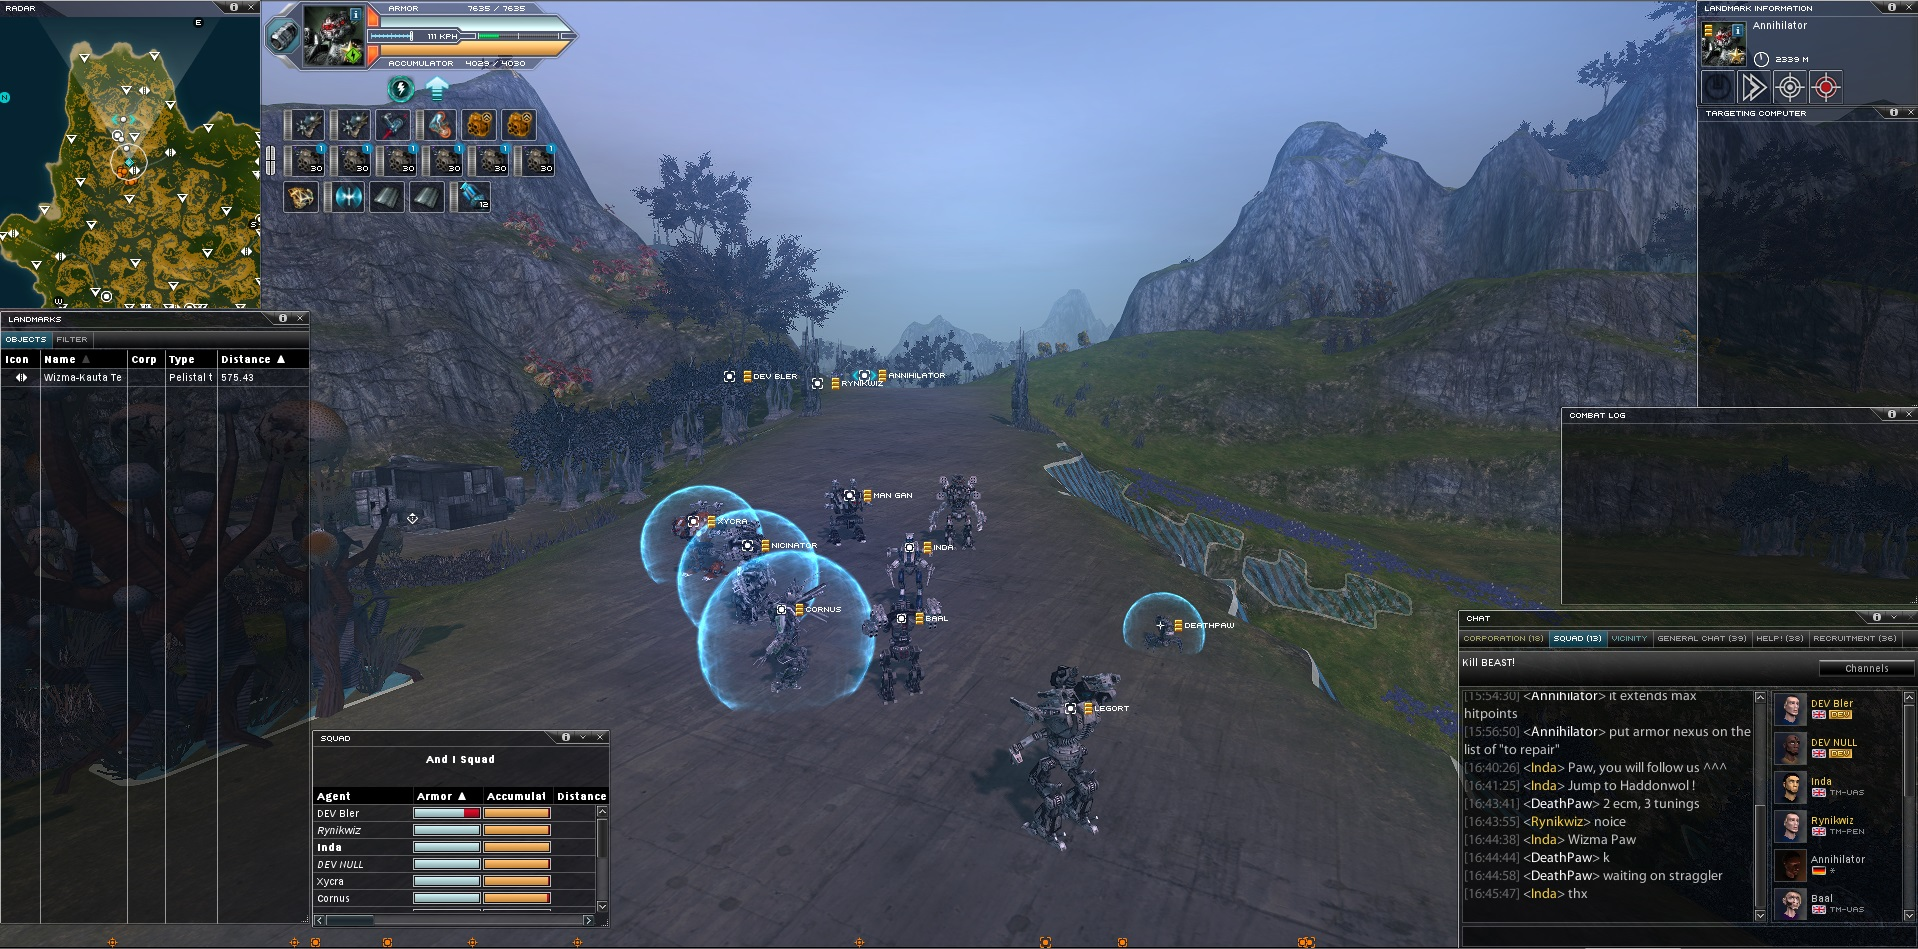 Screen from our PVP event testing weekend